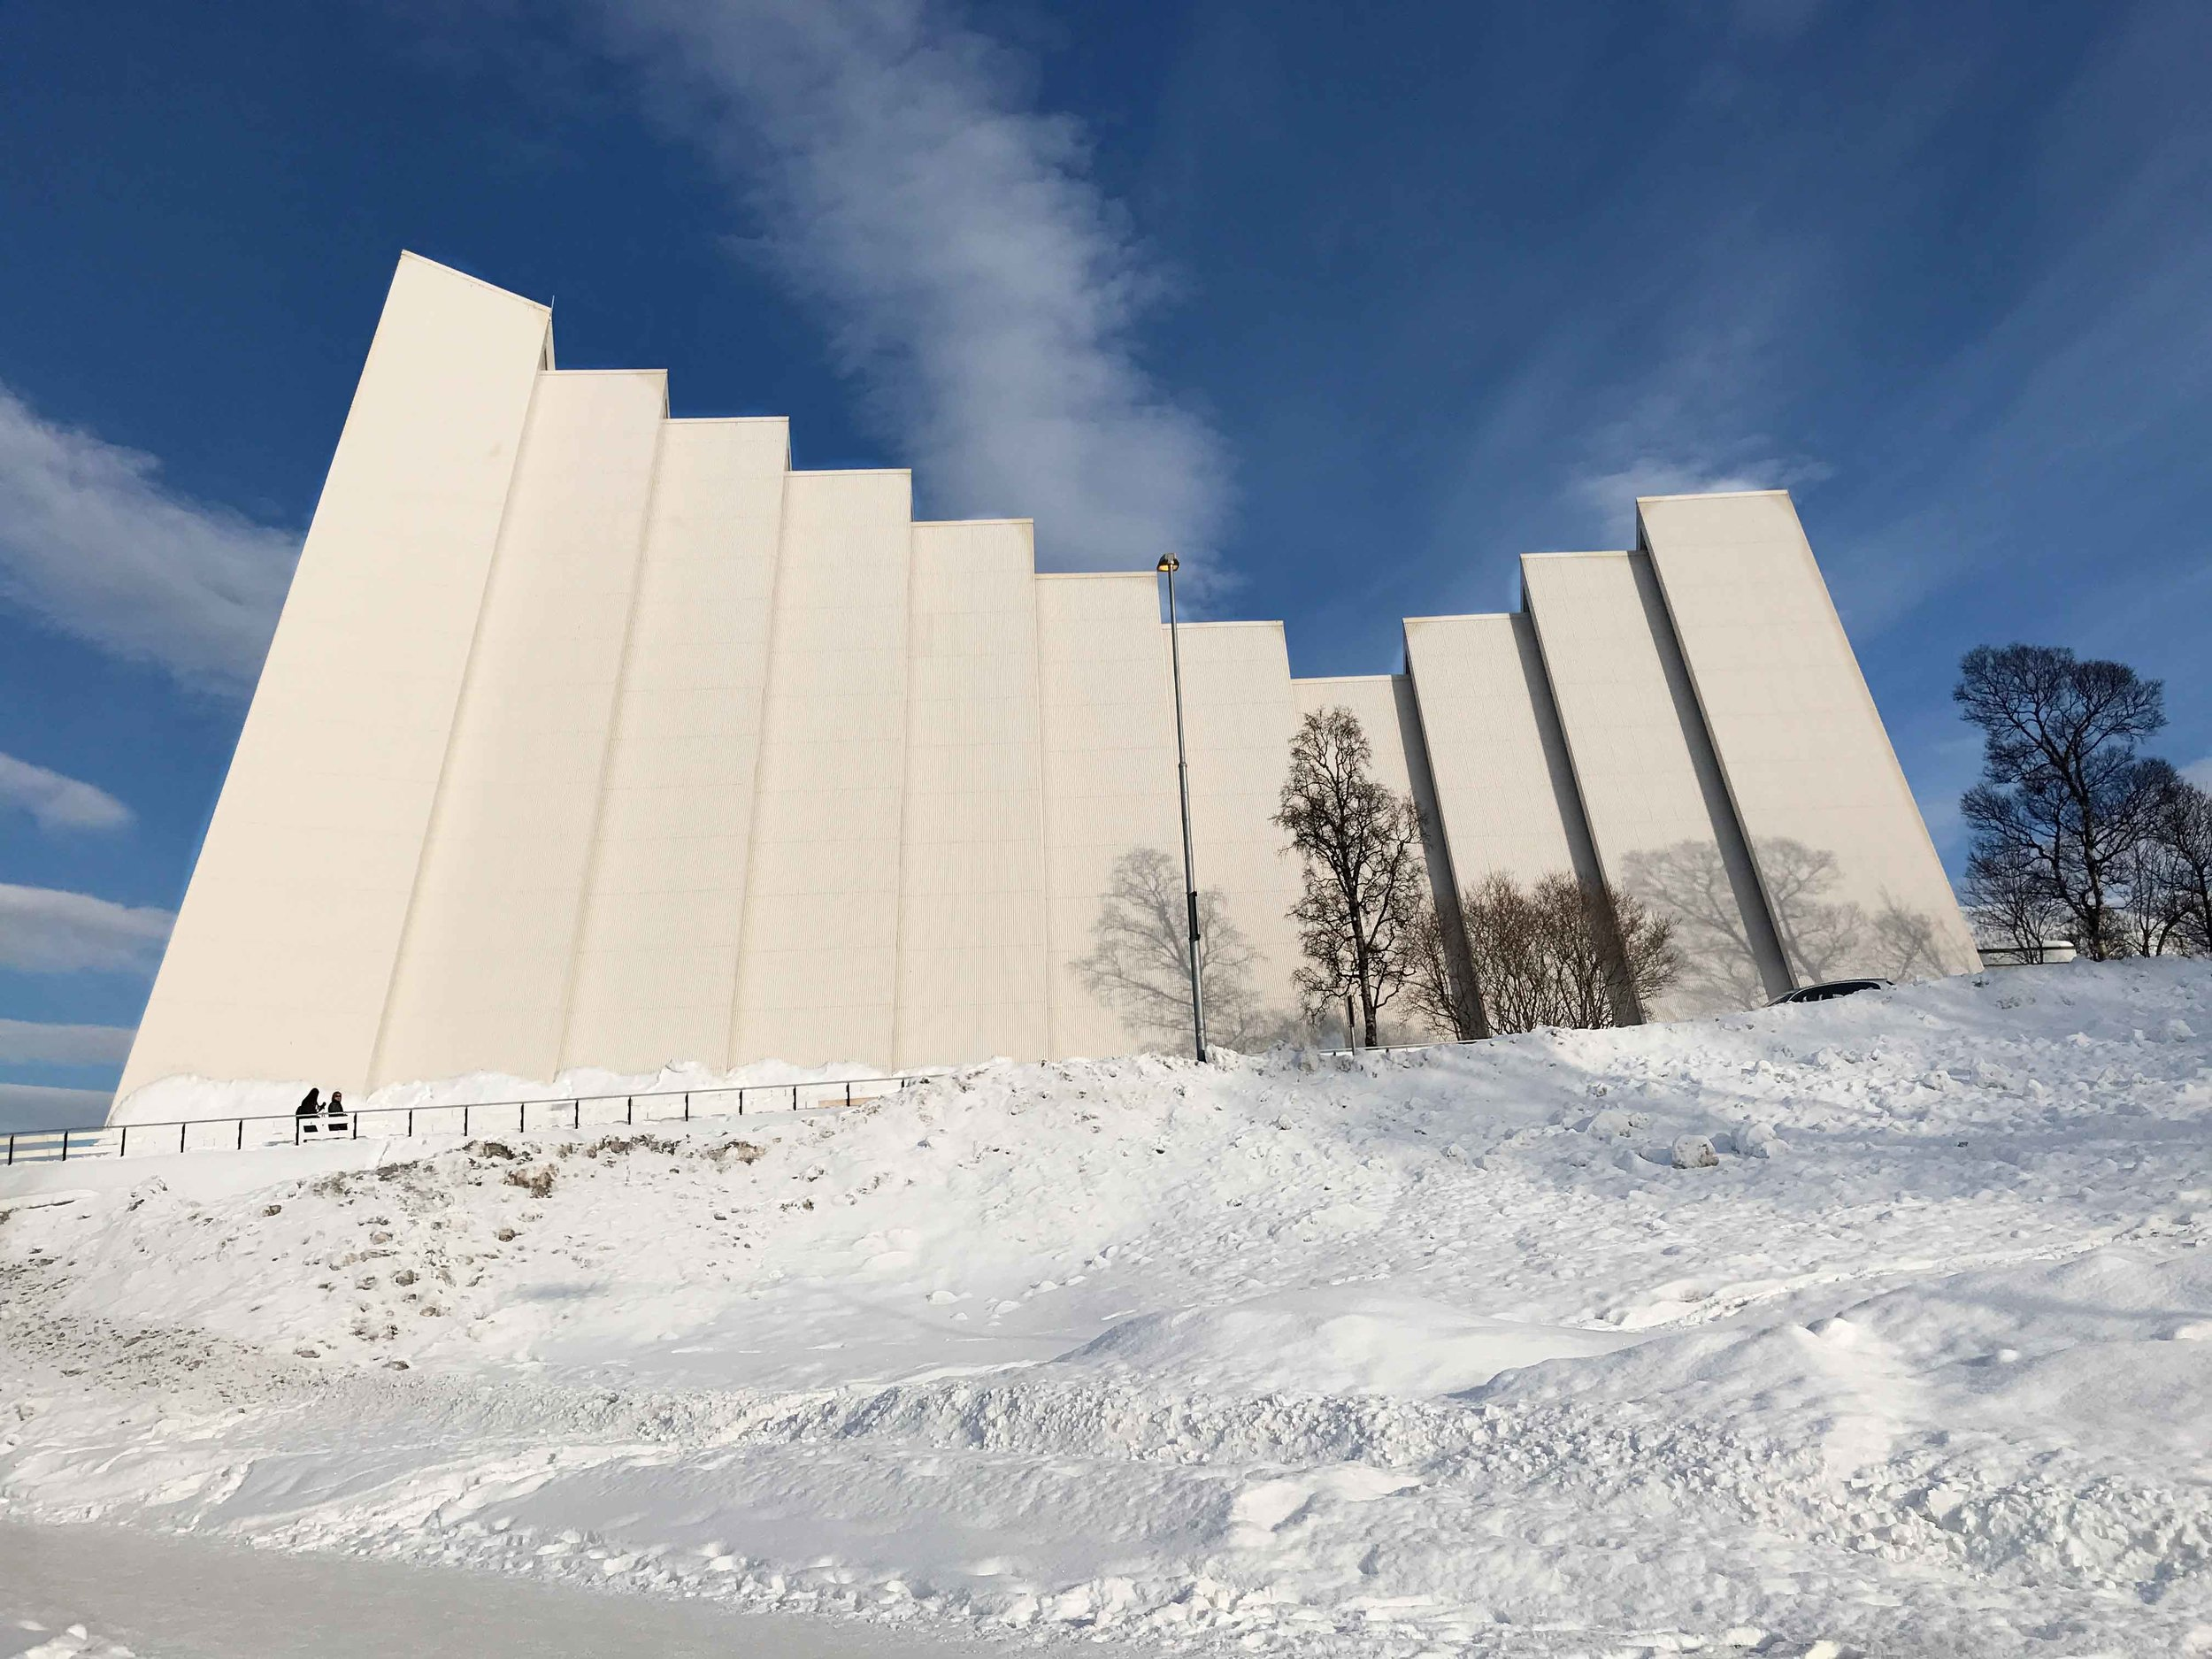 Arctic Church, Tromso, Norway. Image©thingstodot.com